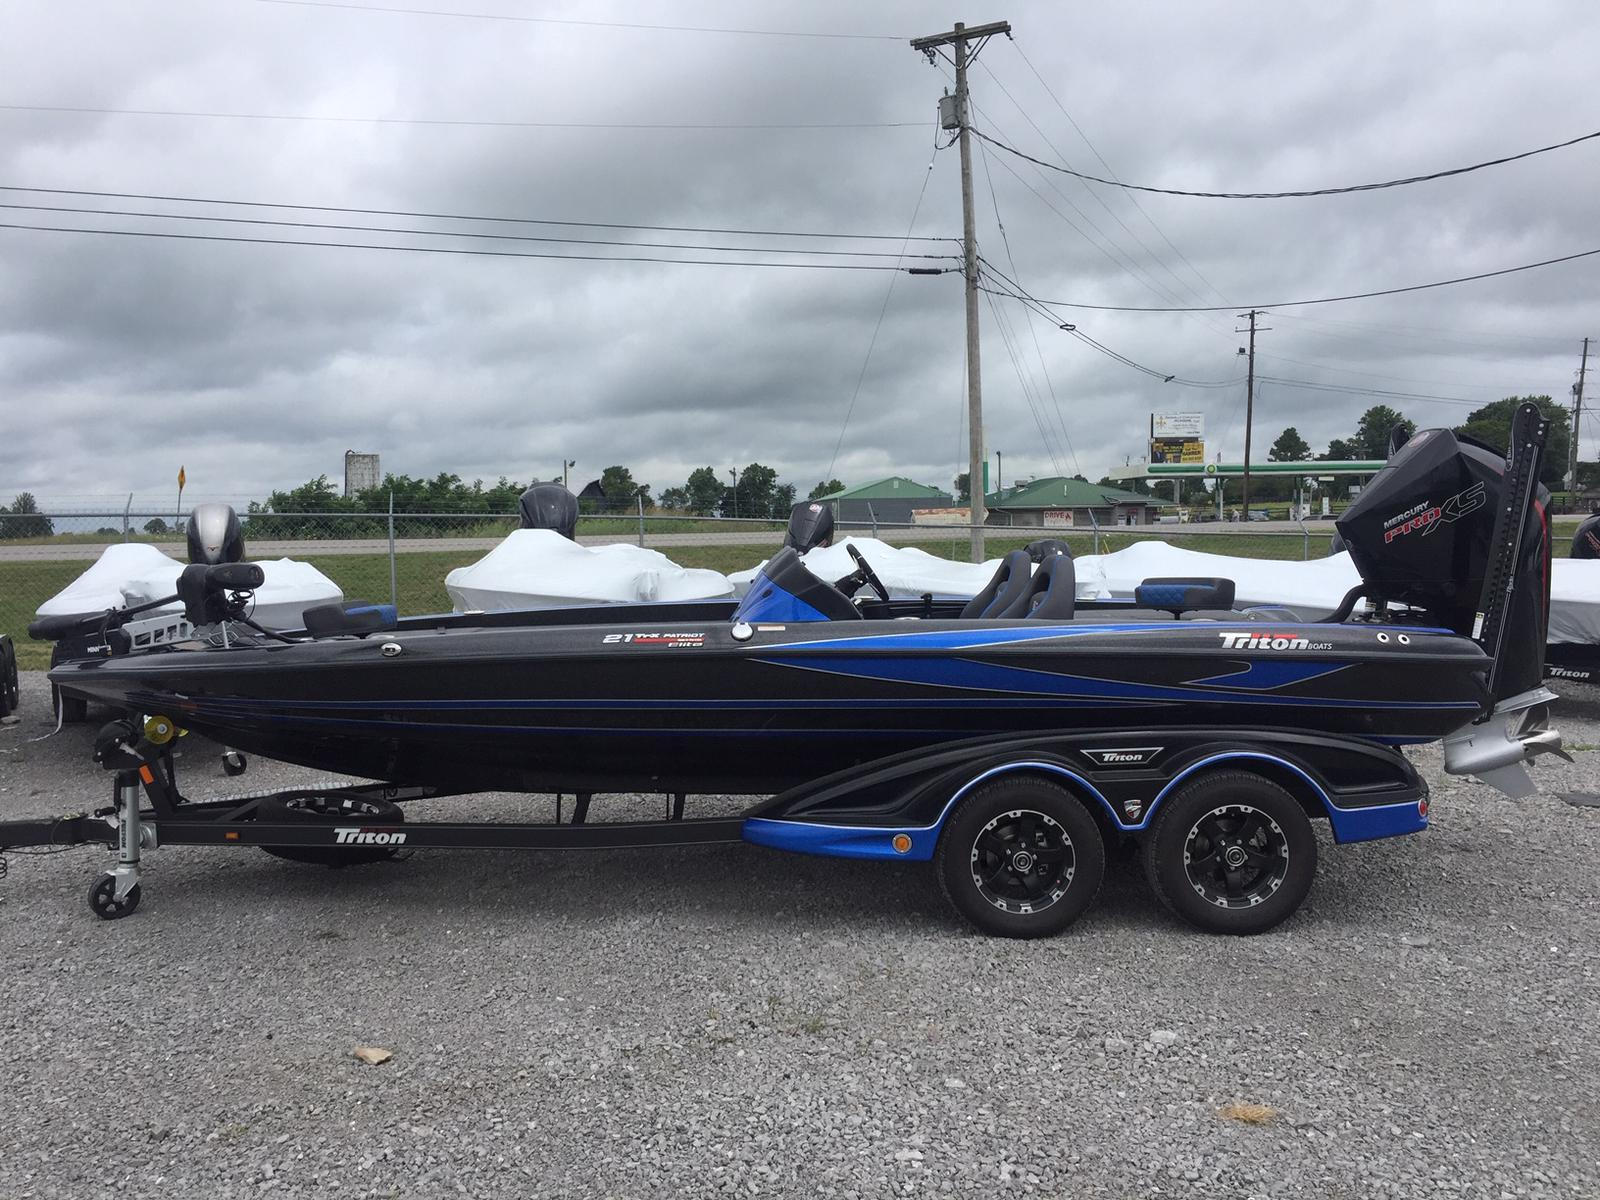 Inventory from Nitro and Triton Boats Lancaster Lancaster